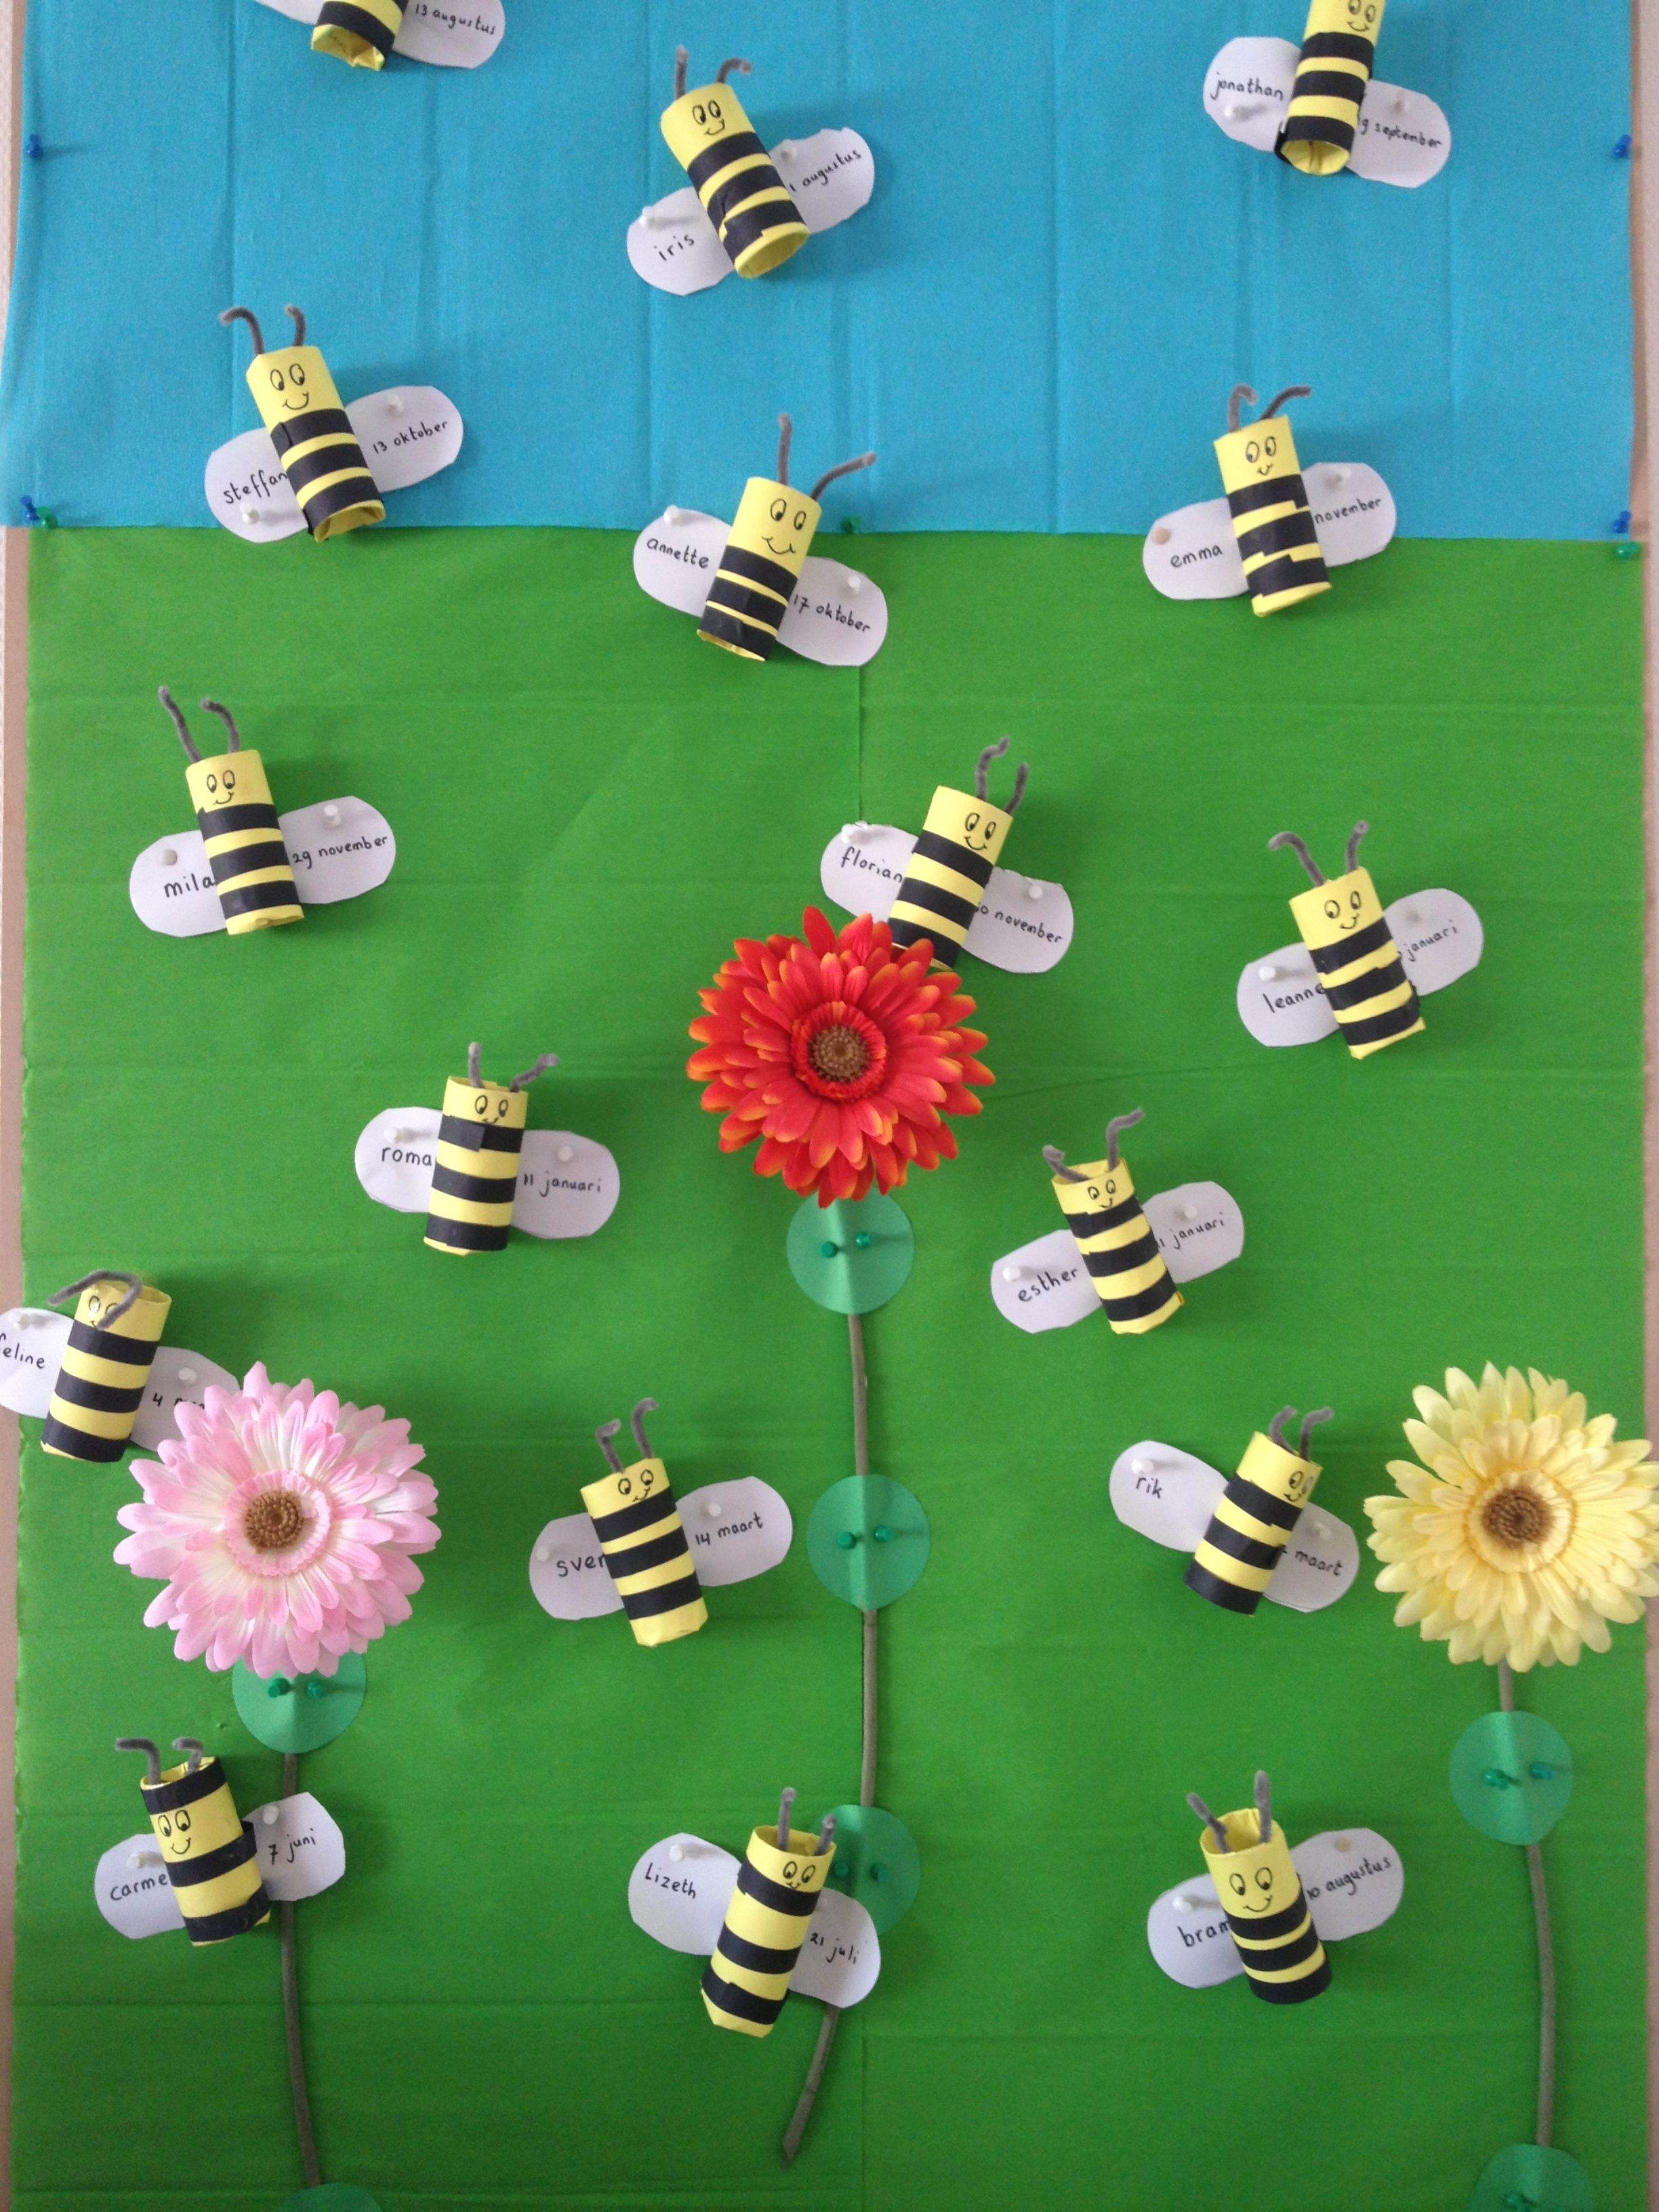 Bee Display Made With Toliet Paper Rolls Students First